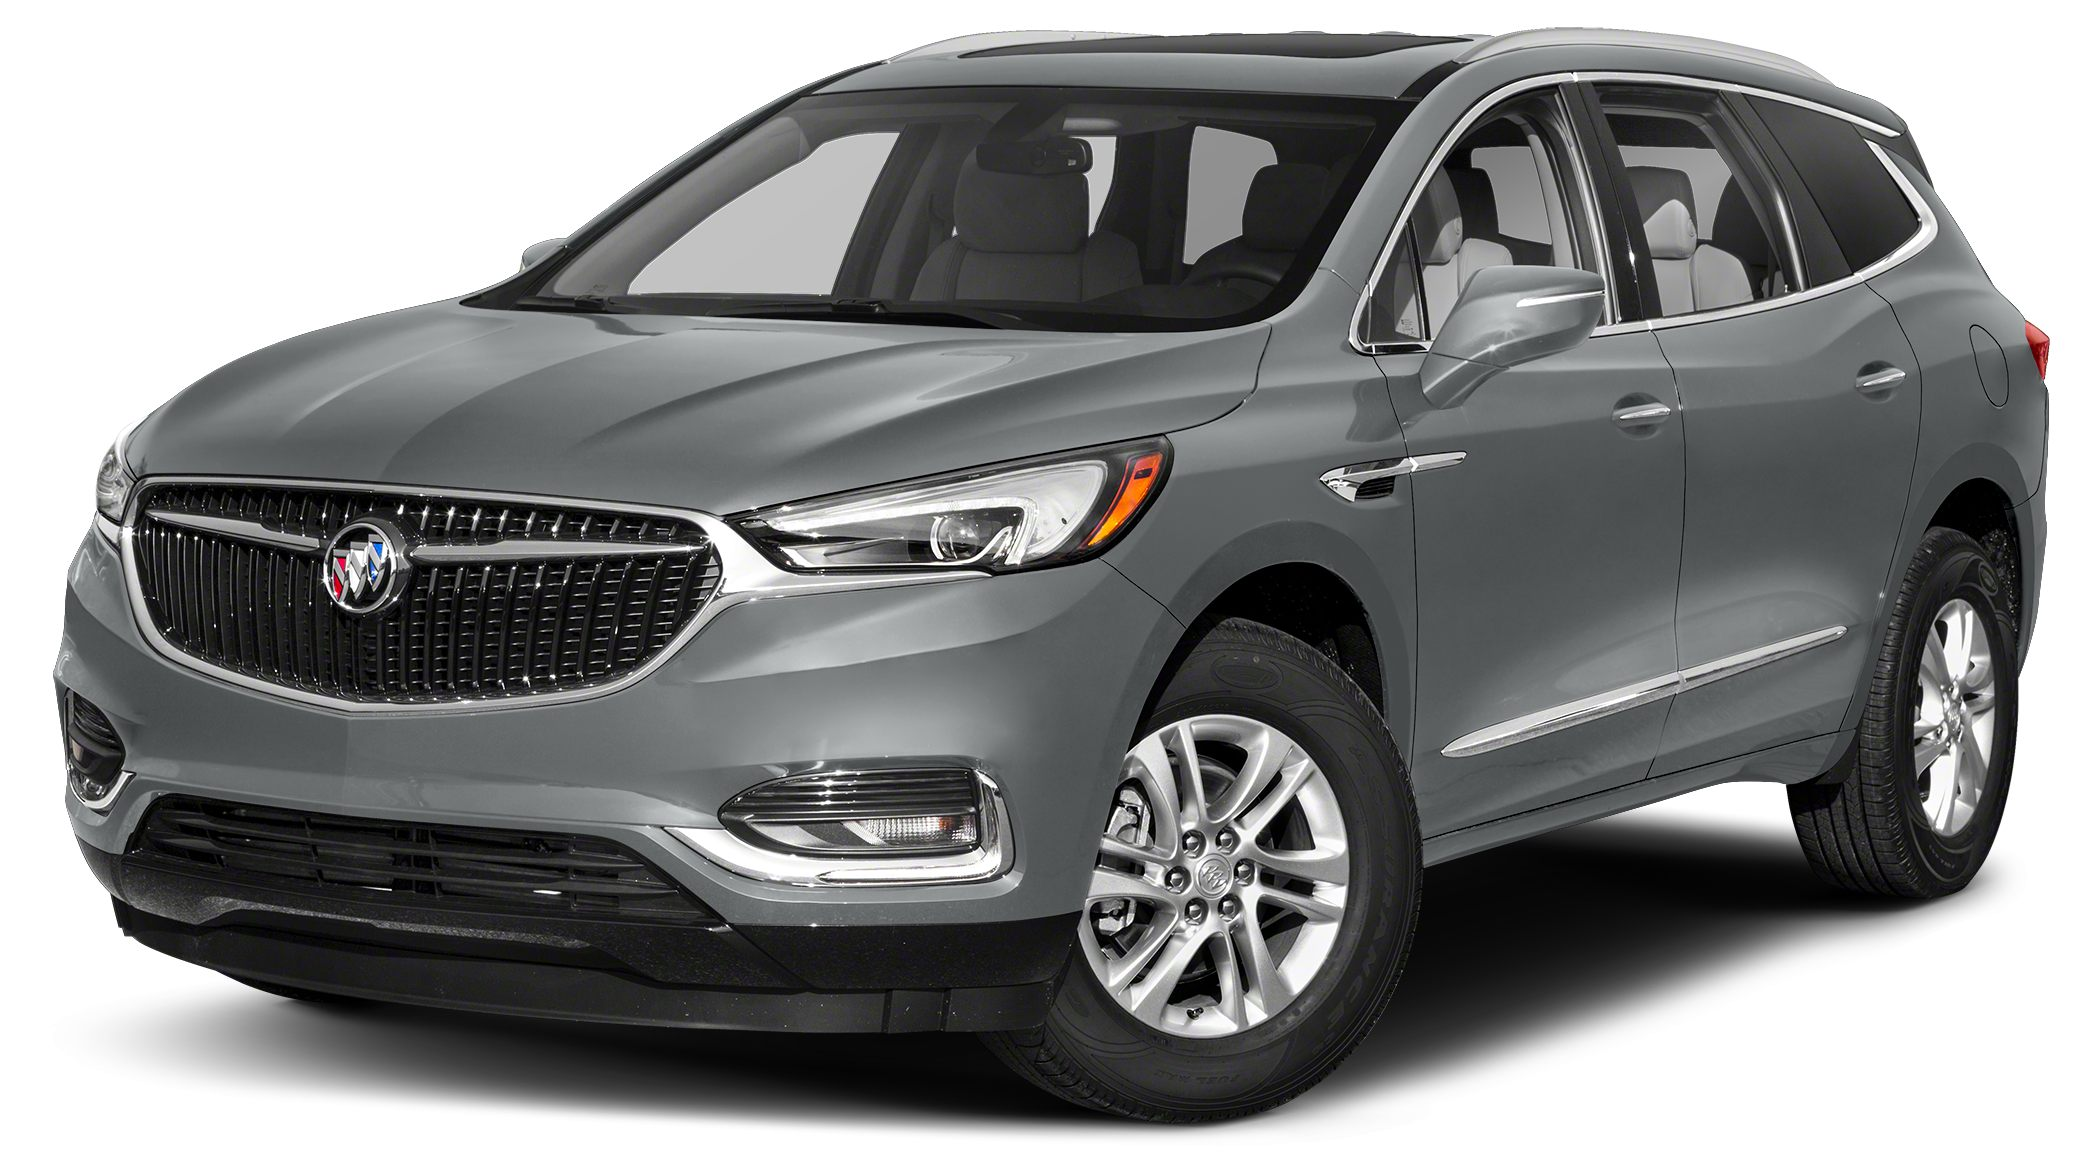 2018 Buick Enclave Avenir This 2018 Buick Enclave Avenir is a real winner with features like a bac